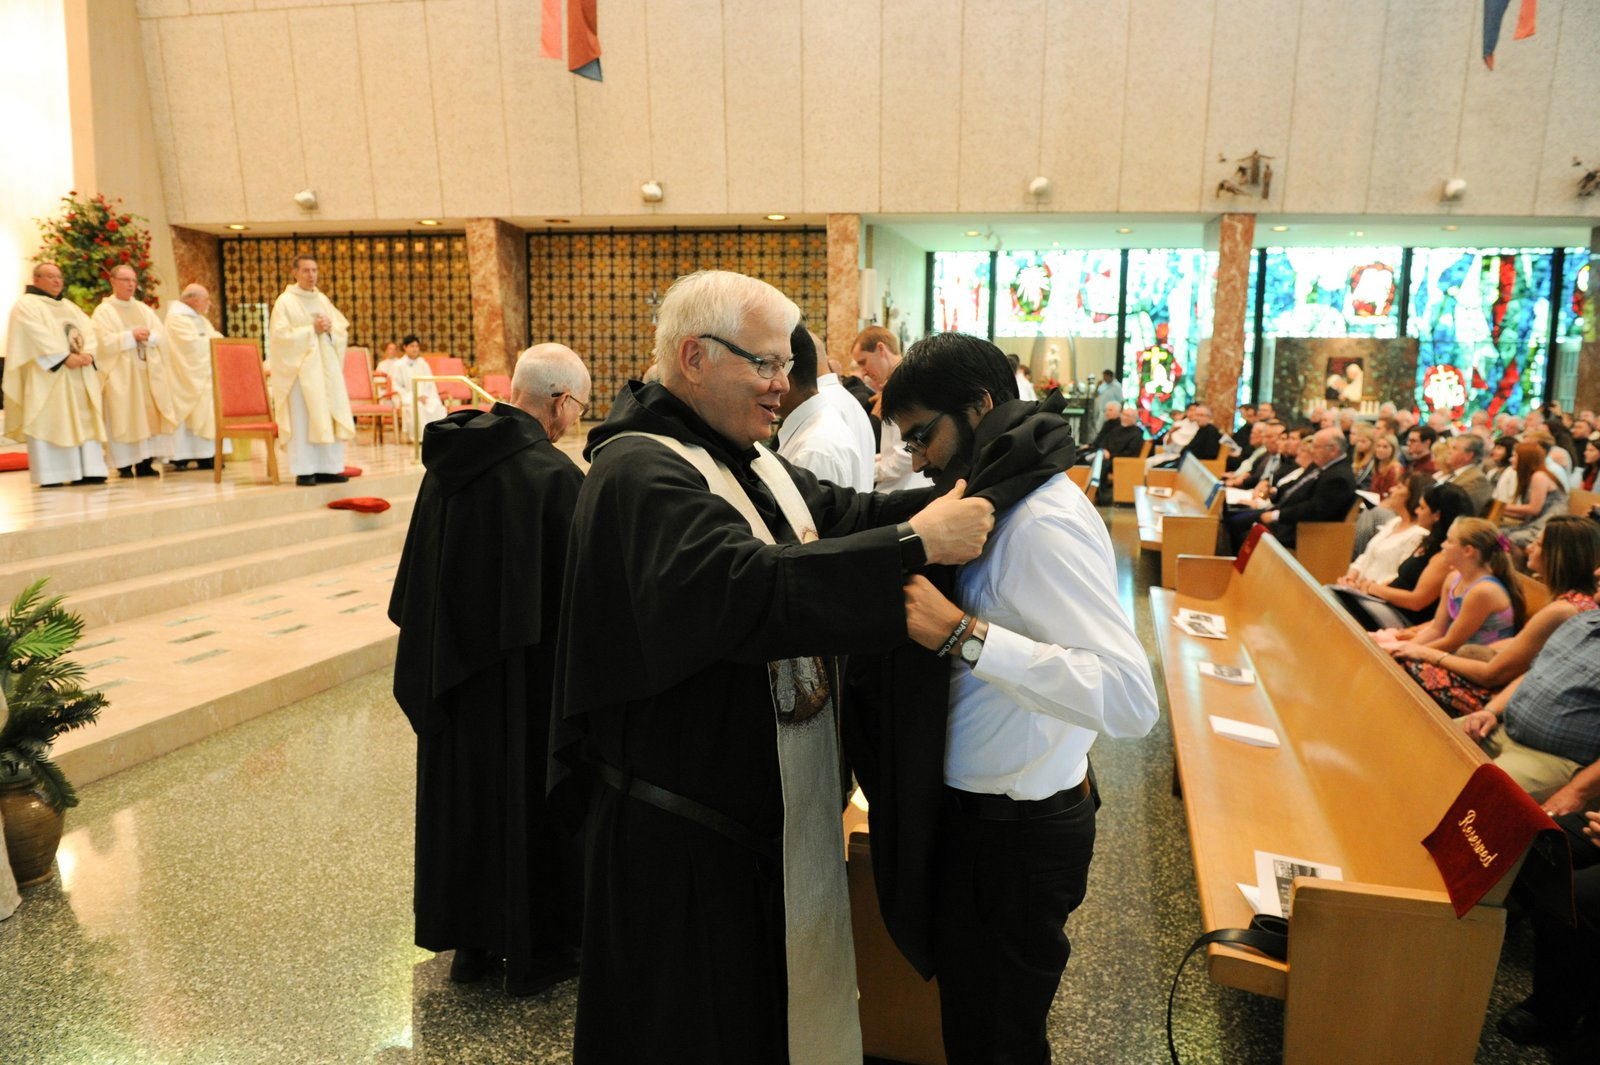 Vestiture of newly professed